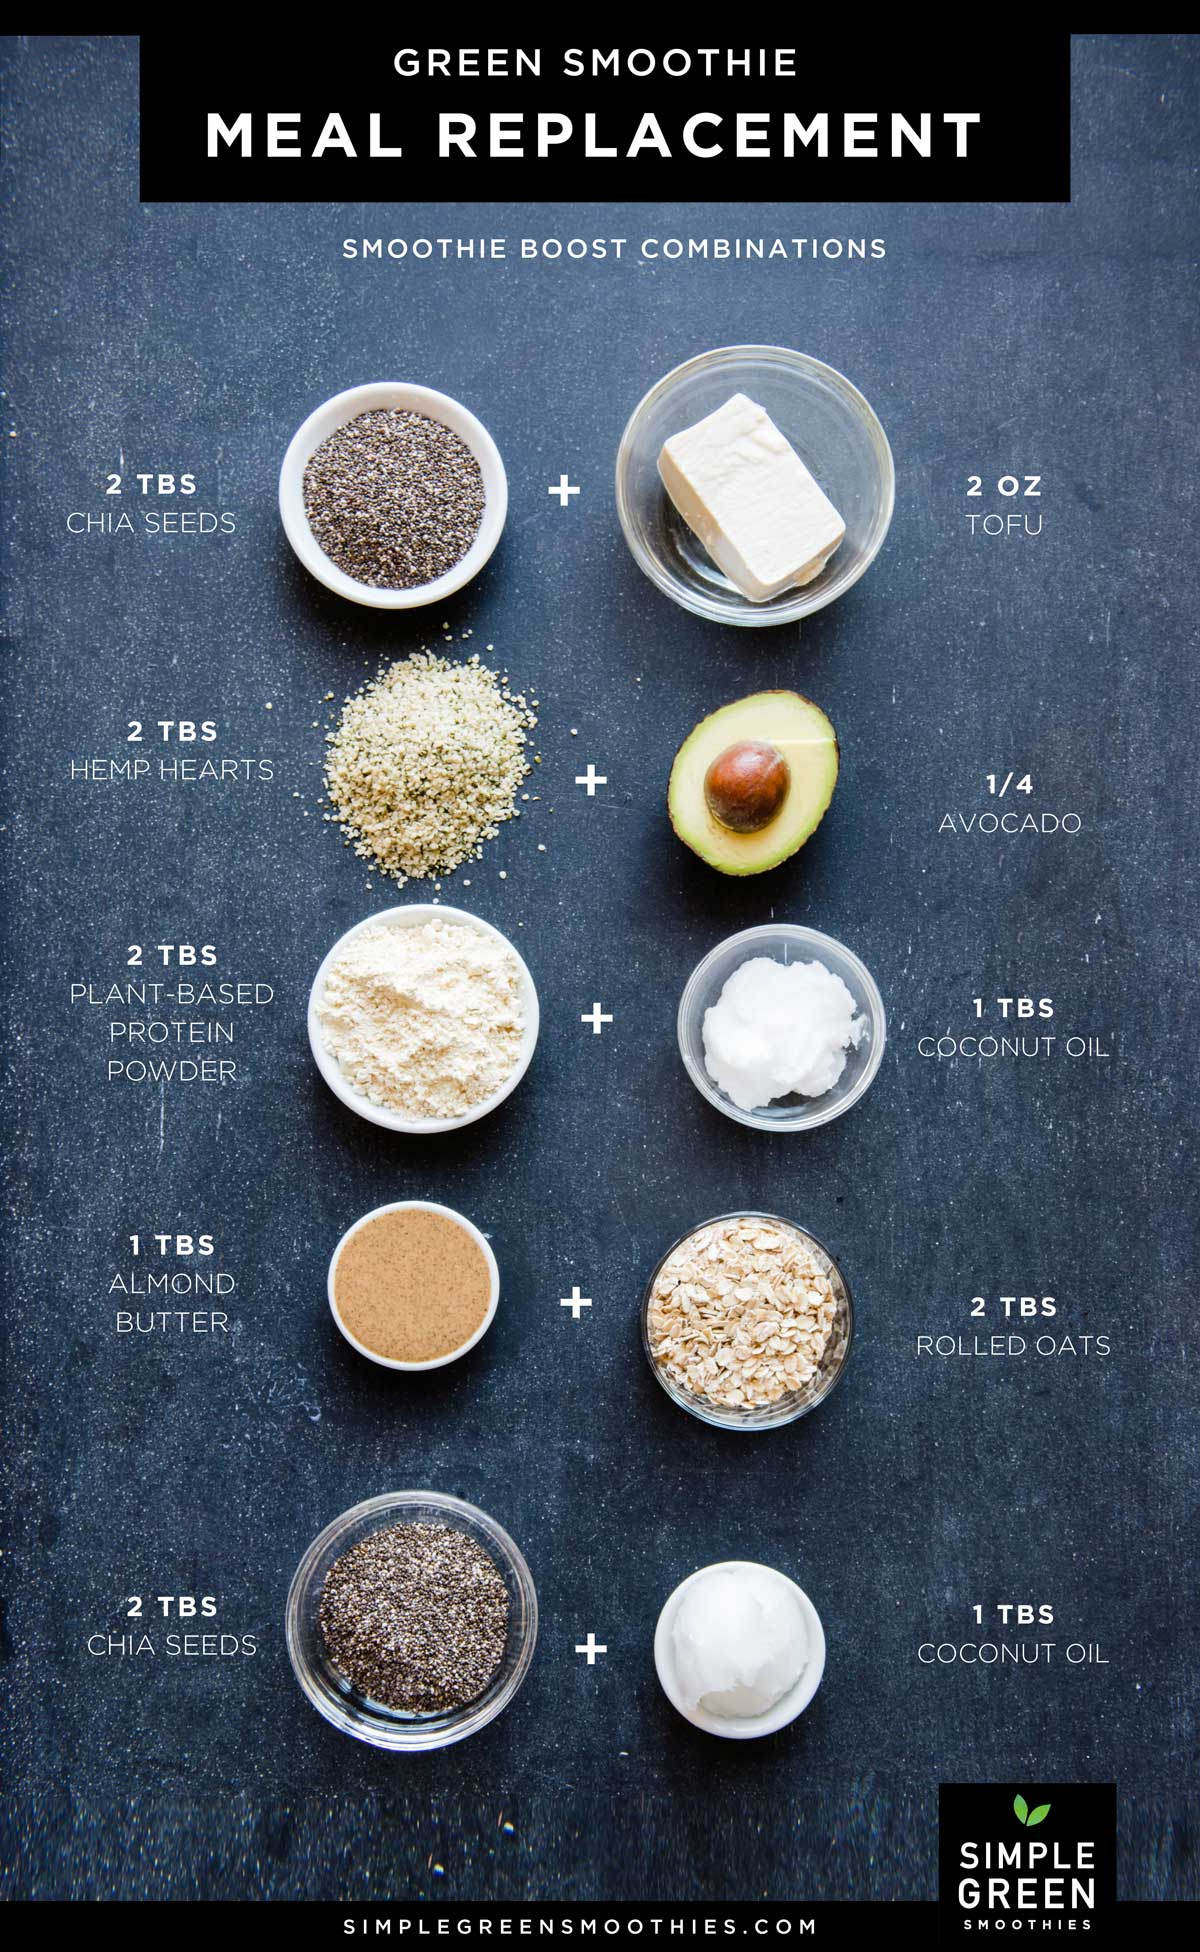 Green Smoothie Meal Replacement Chart with combinations